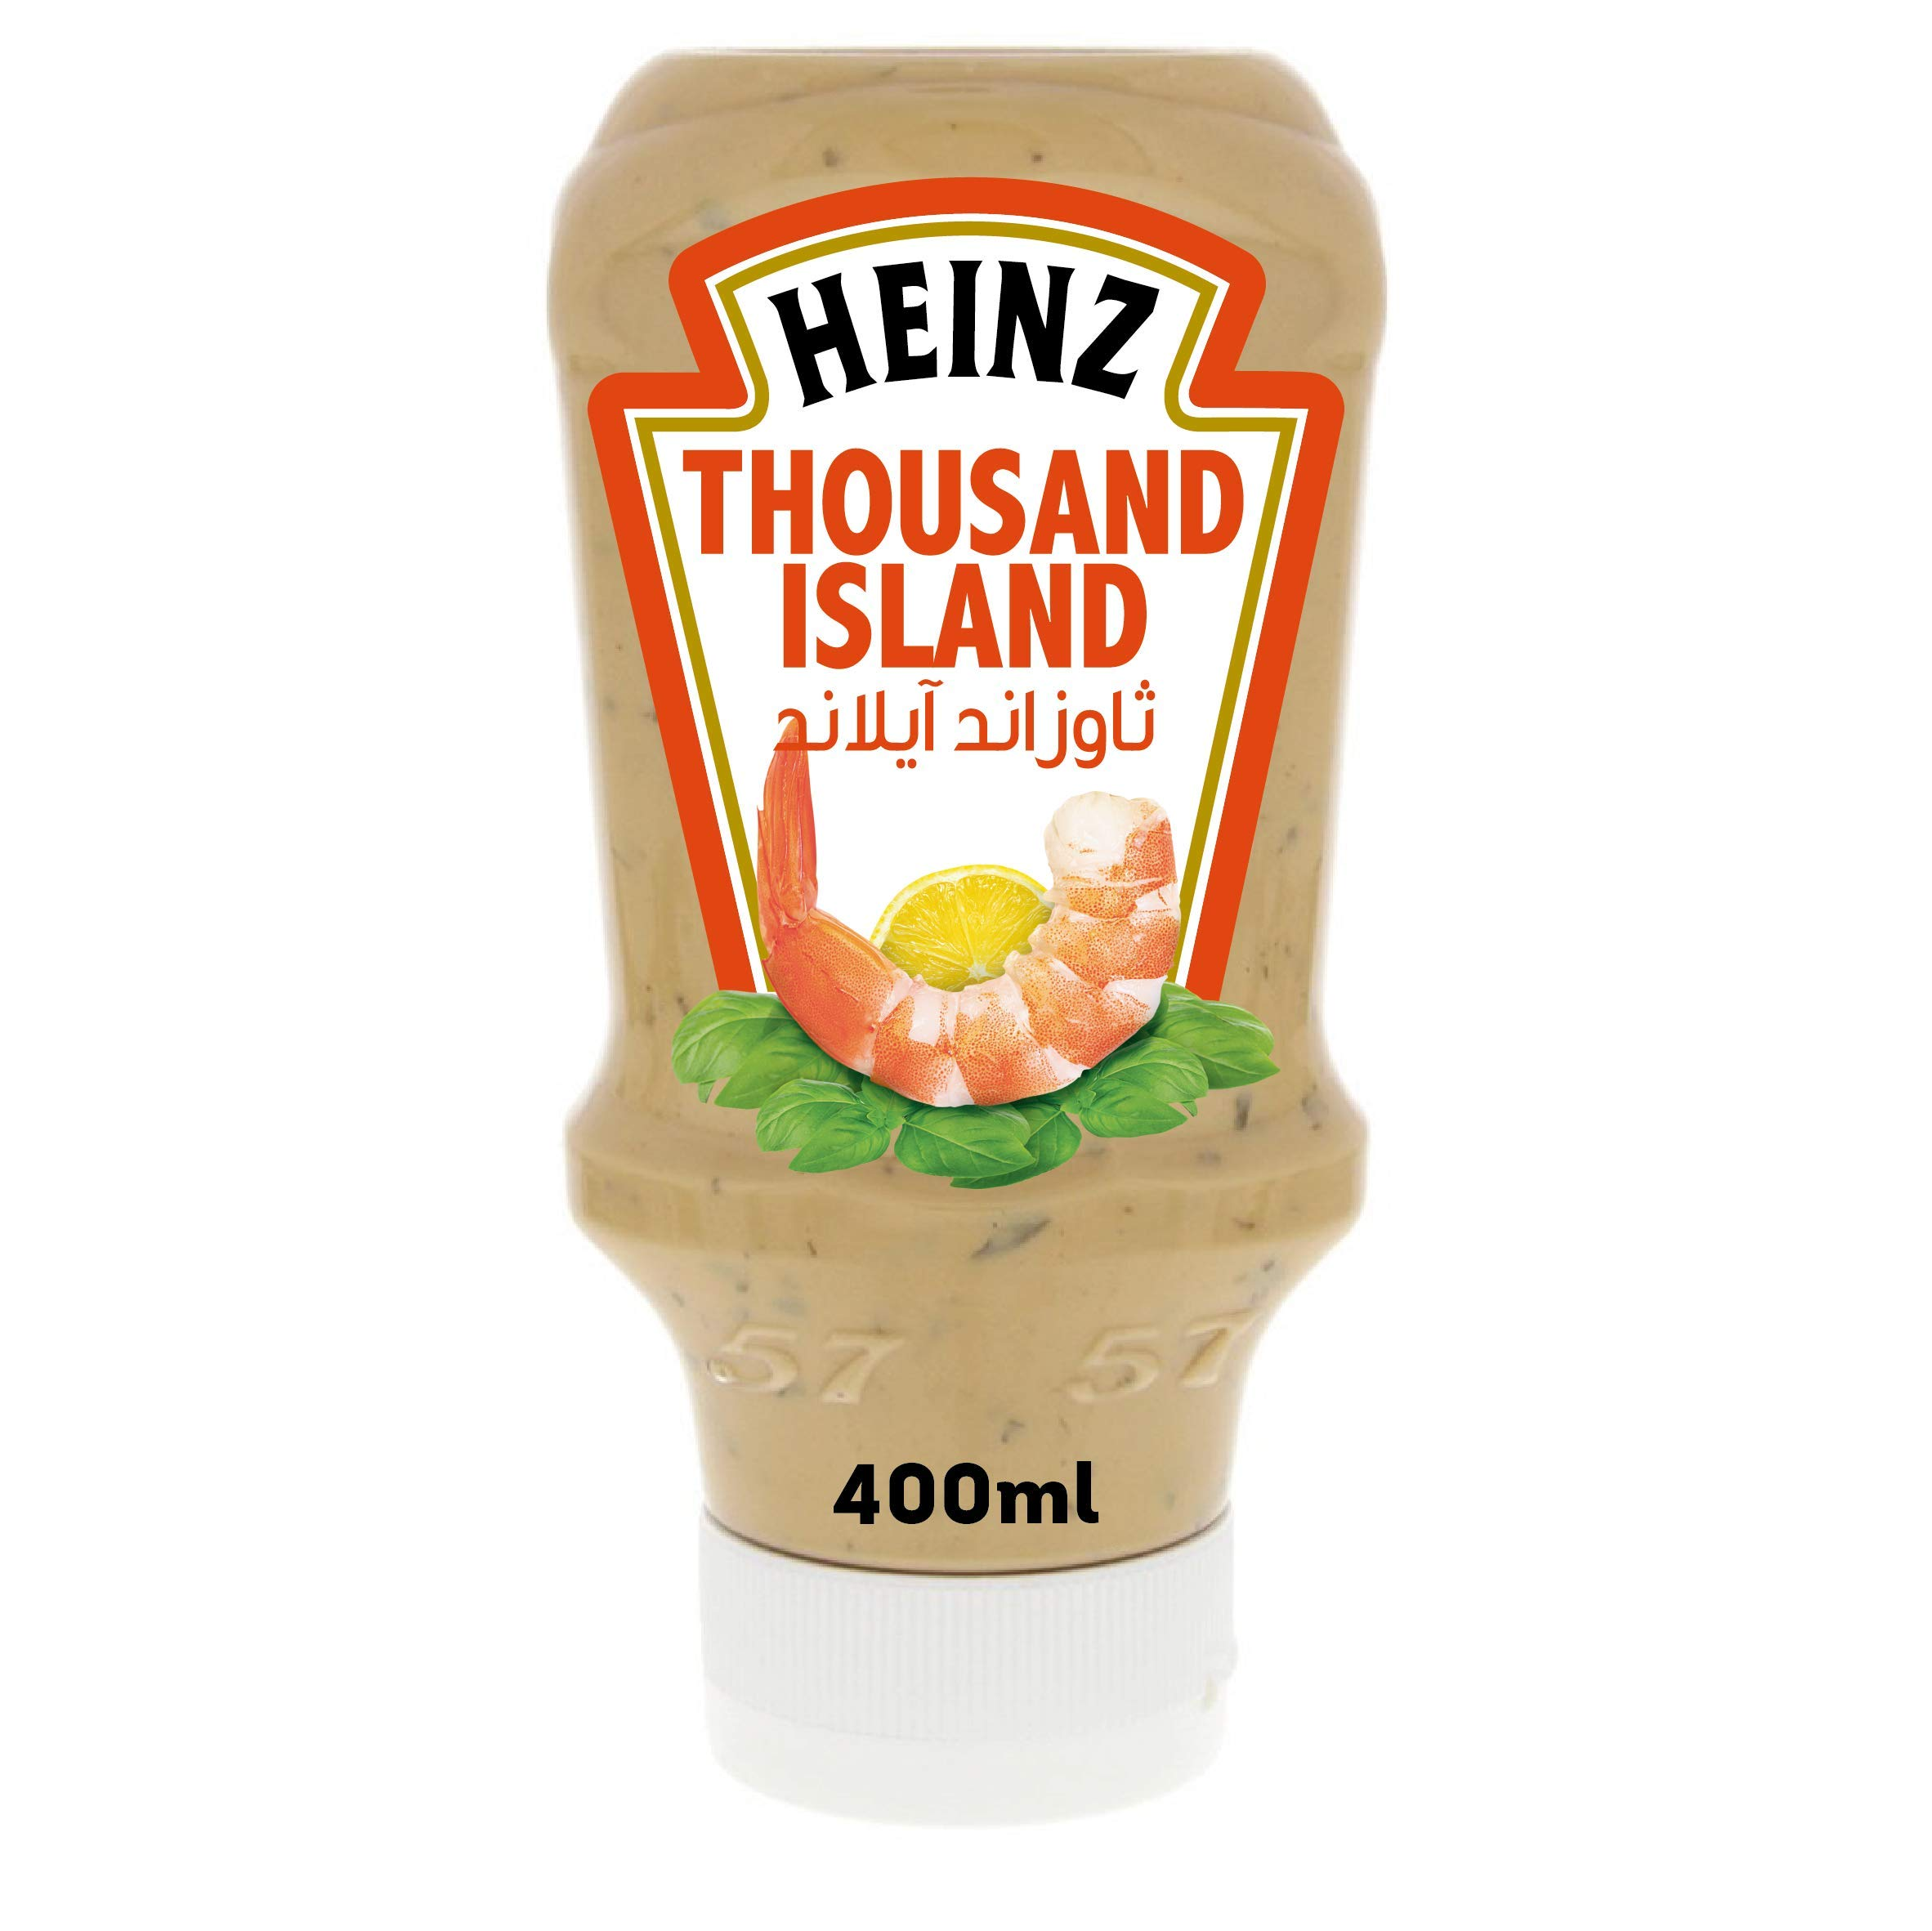 Heinz Thousand Island Dressing, Top Down Sqeezy Bottle, 400ml